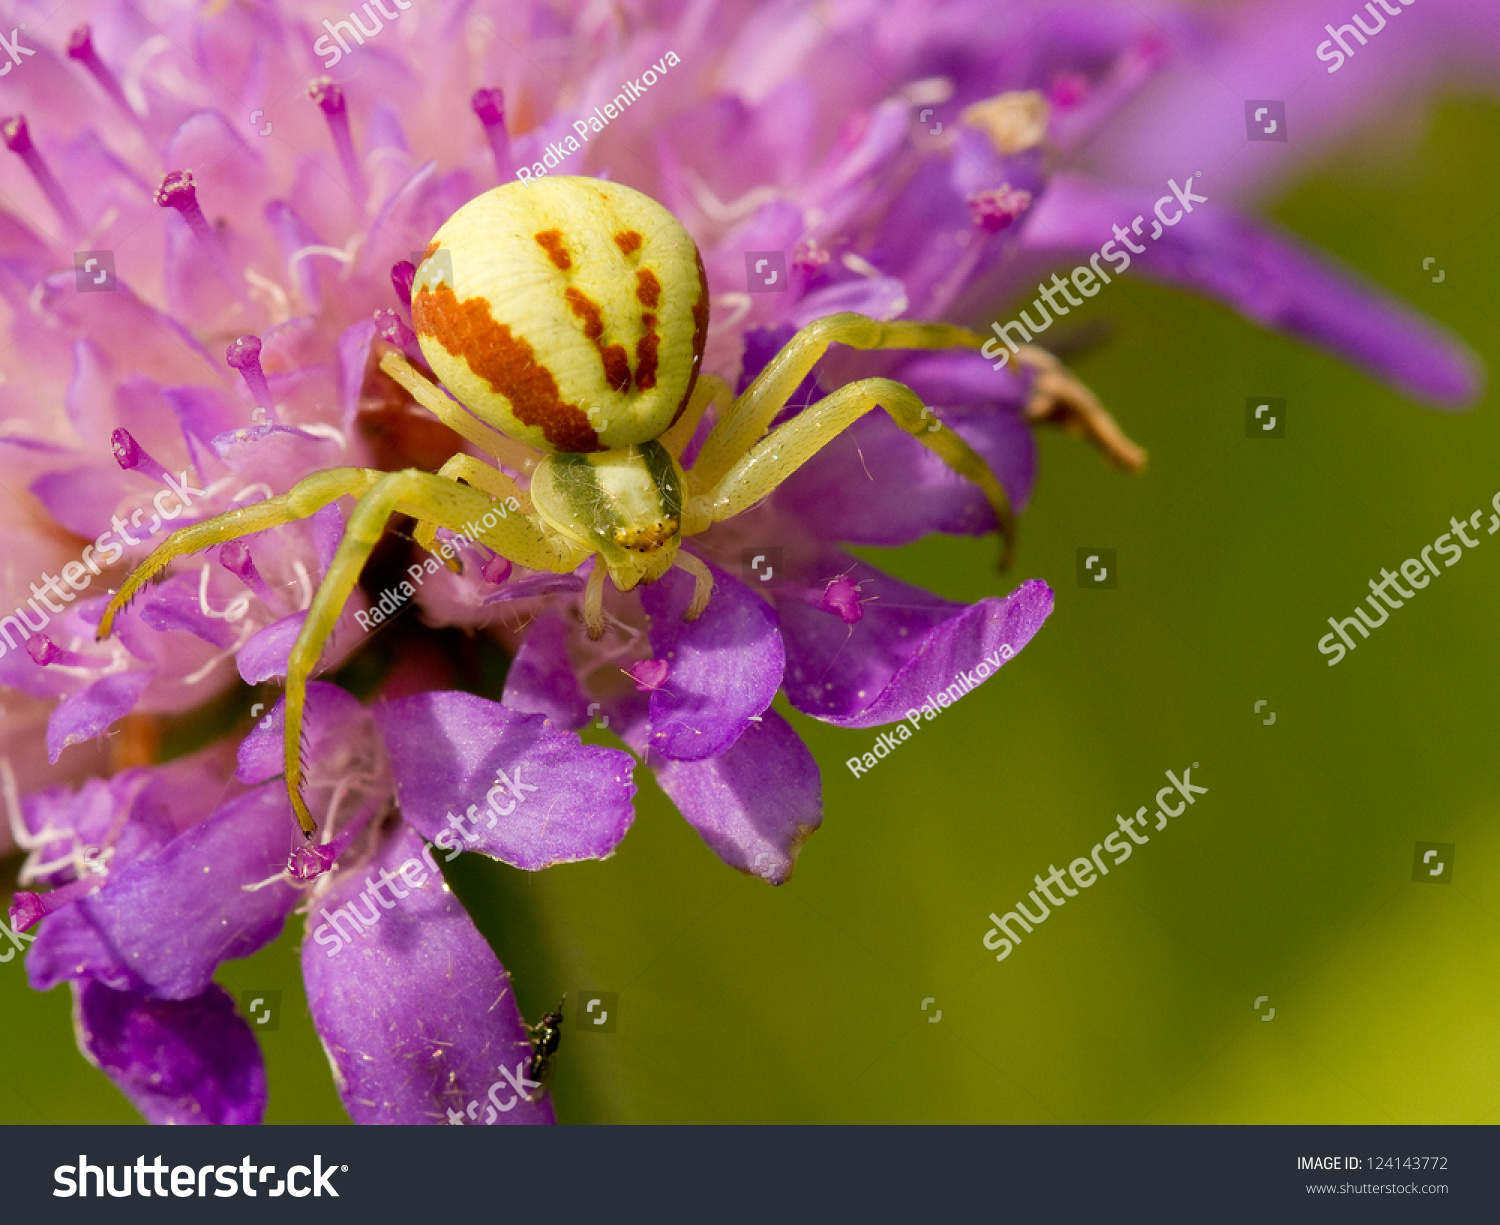 Crab spider preying bumble bee garden spiders spiders flower spiders - Goldenrod Crab Spider Sitting On A Flower Misumena Vatia